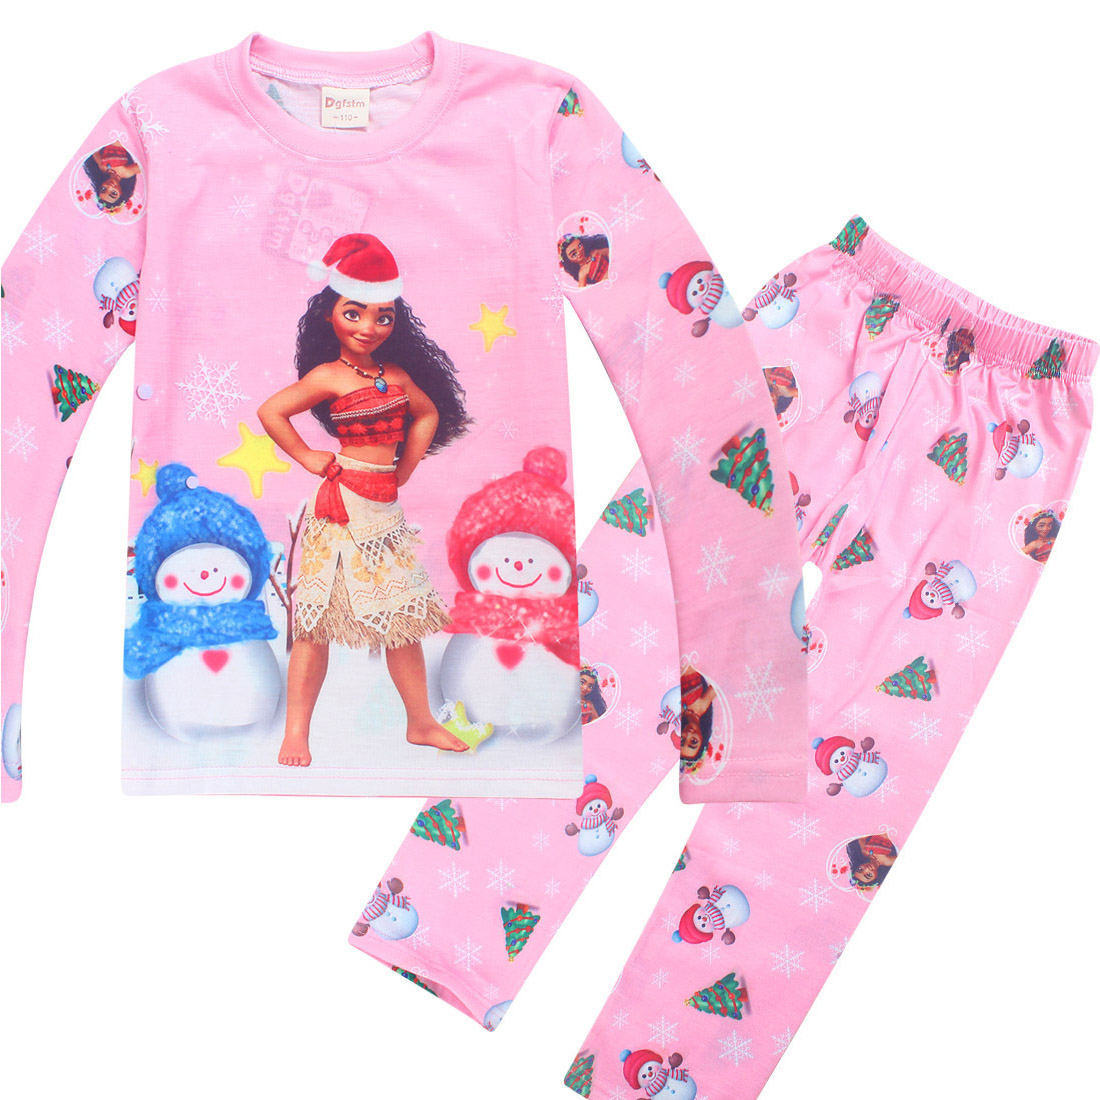 Baby Clothes Girls font b Christmas b font Pajamas Long Sleeve Boys Sleepwear pyjamas children Moana